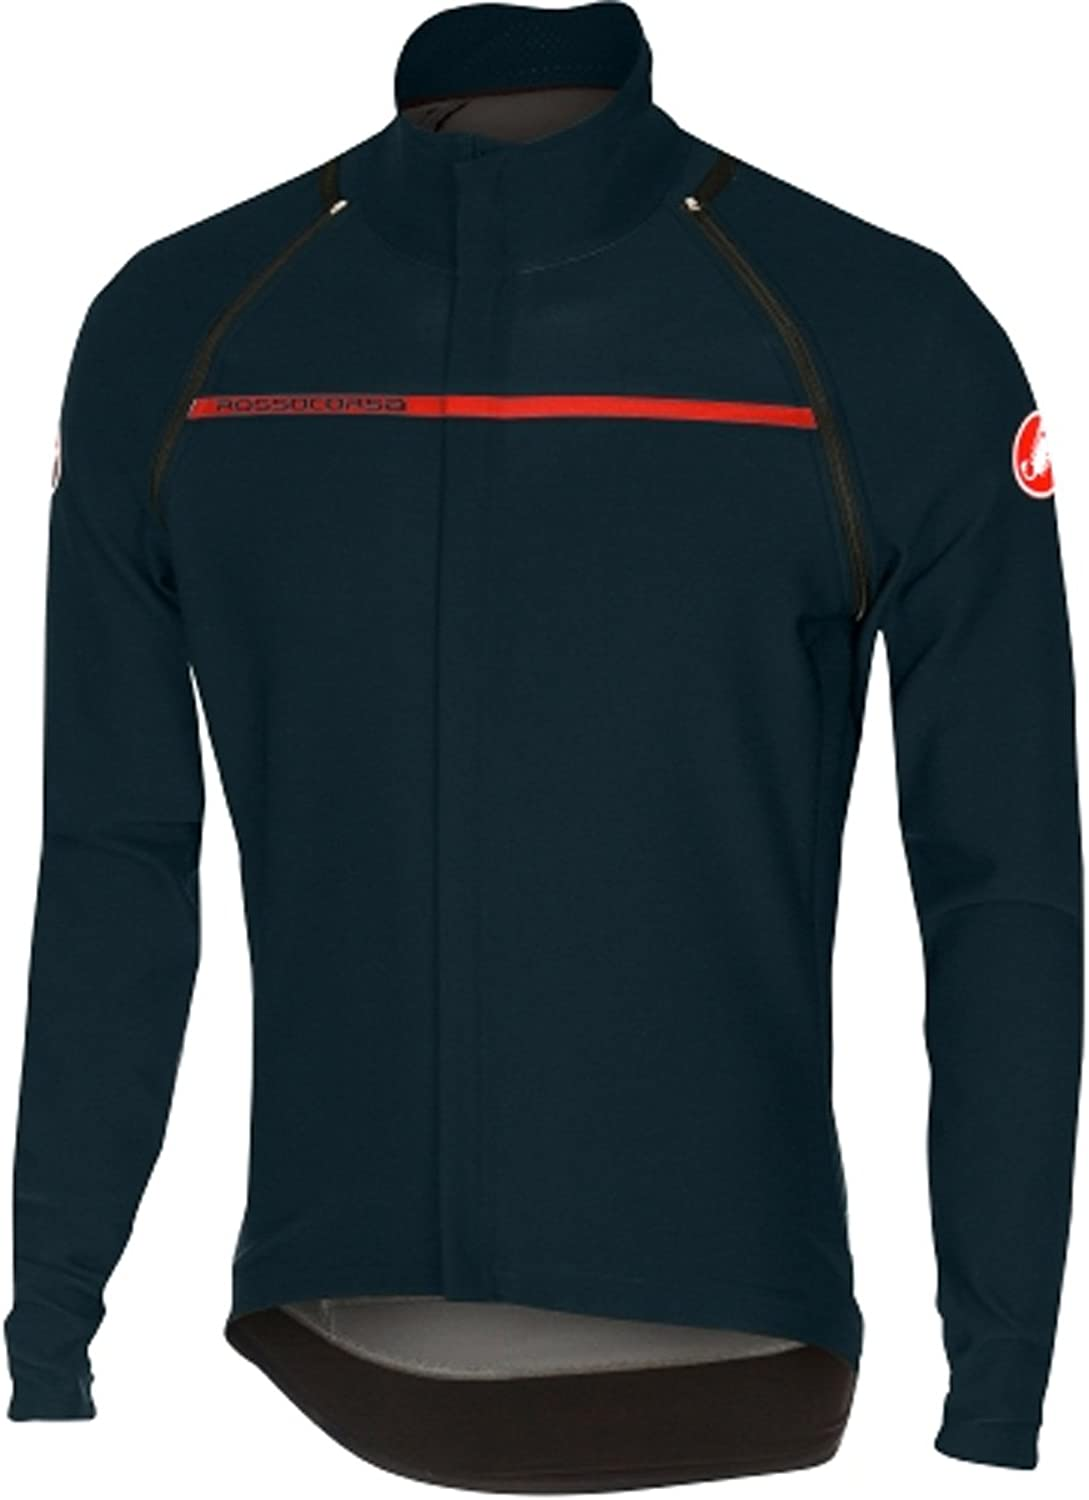 Castelli Perfetto Congreenible Bike Jacket Dark Infinity blueee 2019